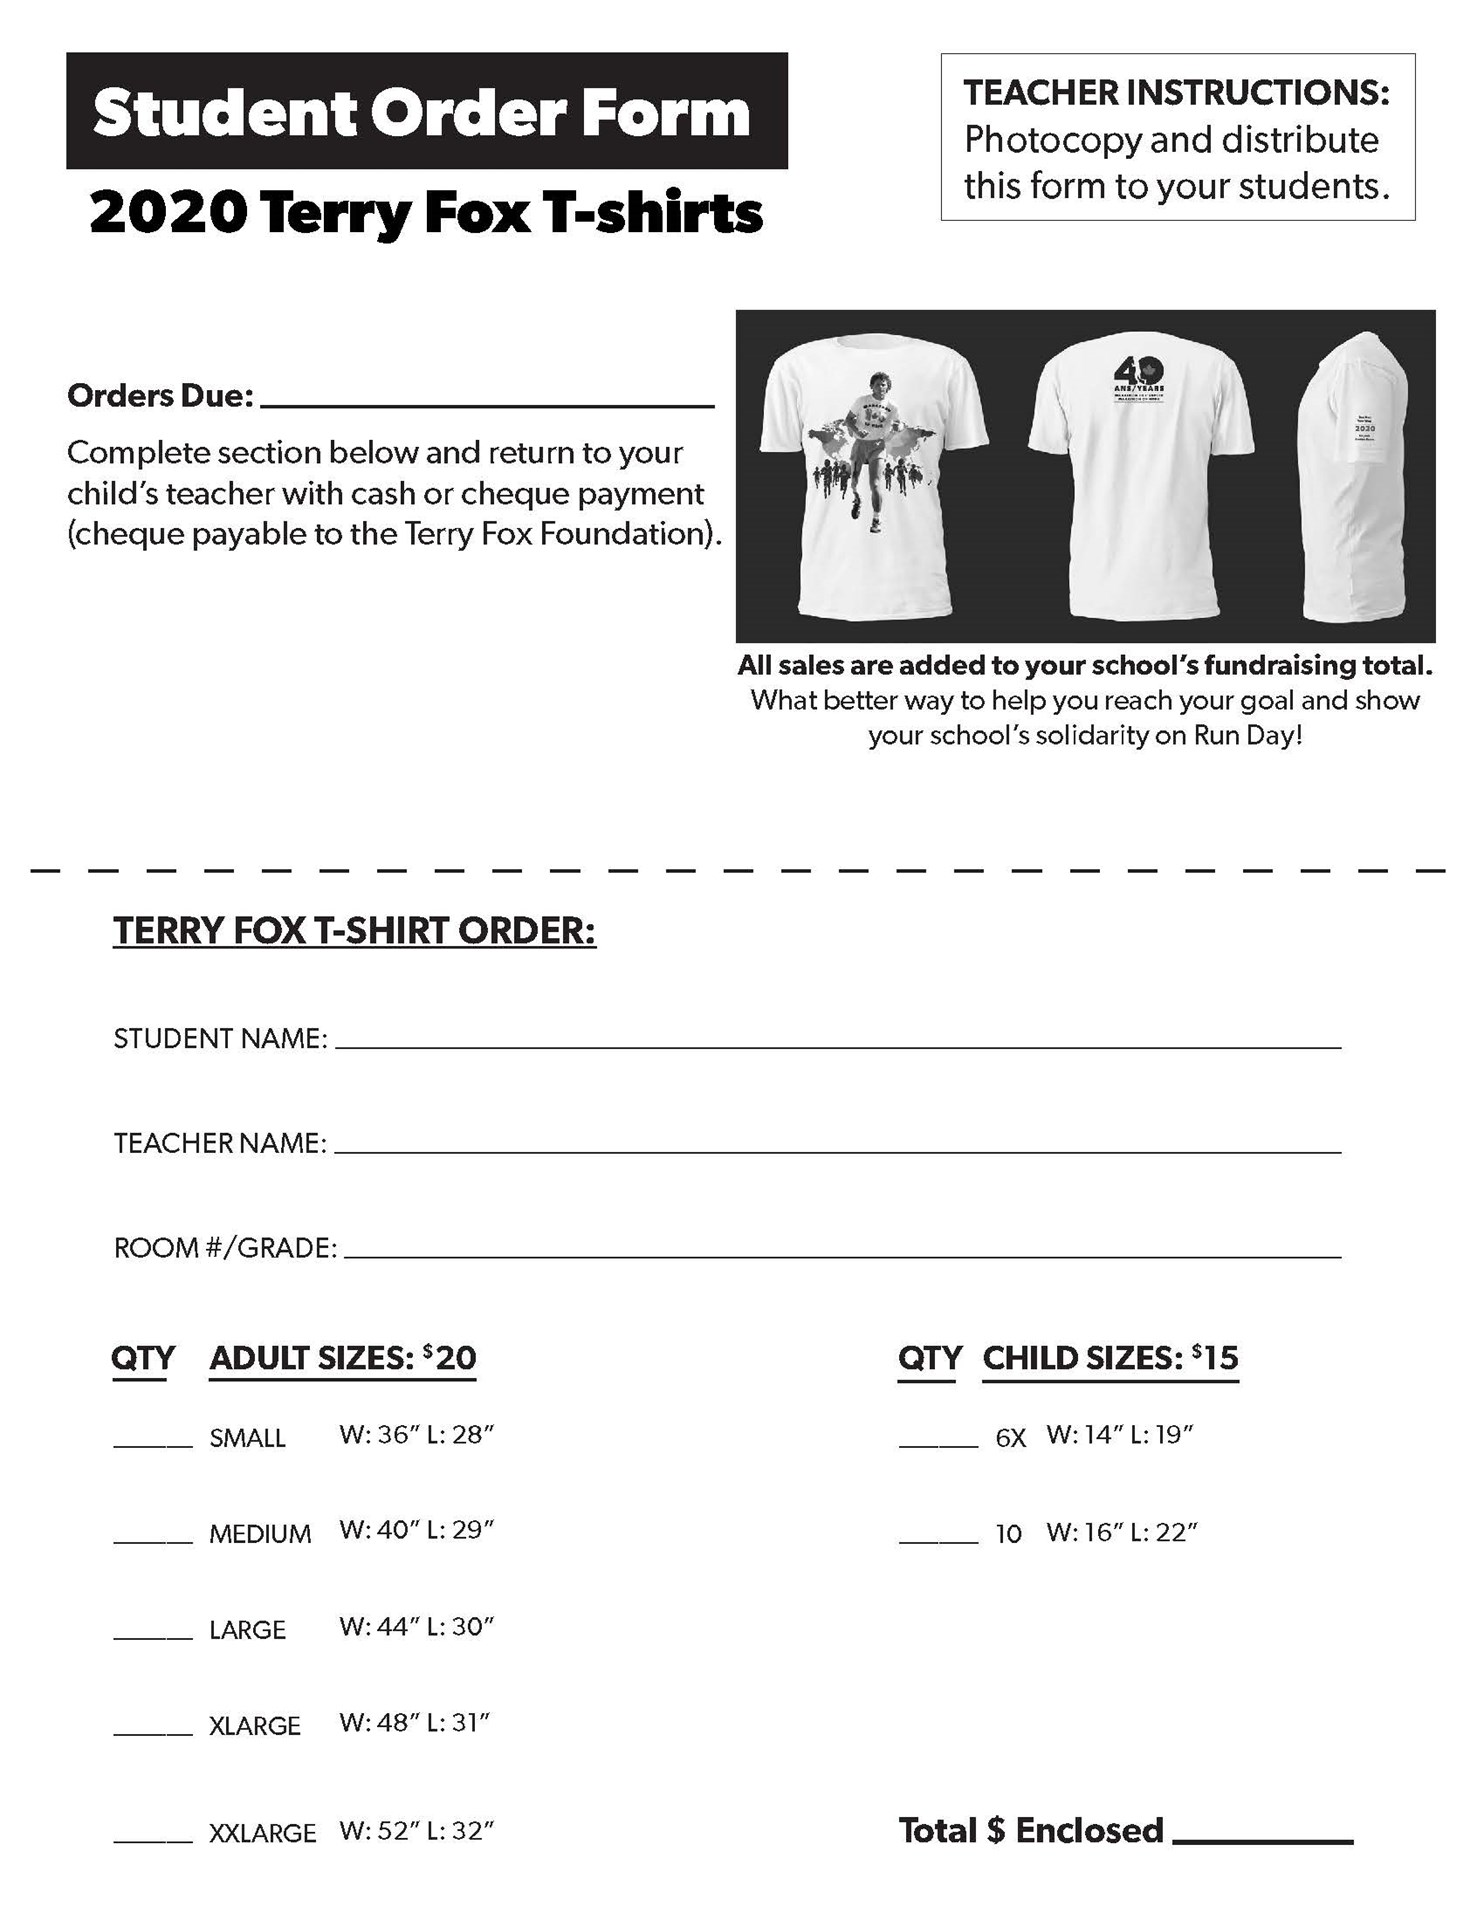 Terry Fox 2020-Student-shirt-order-form.jpg